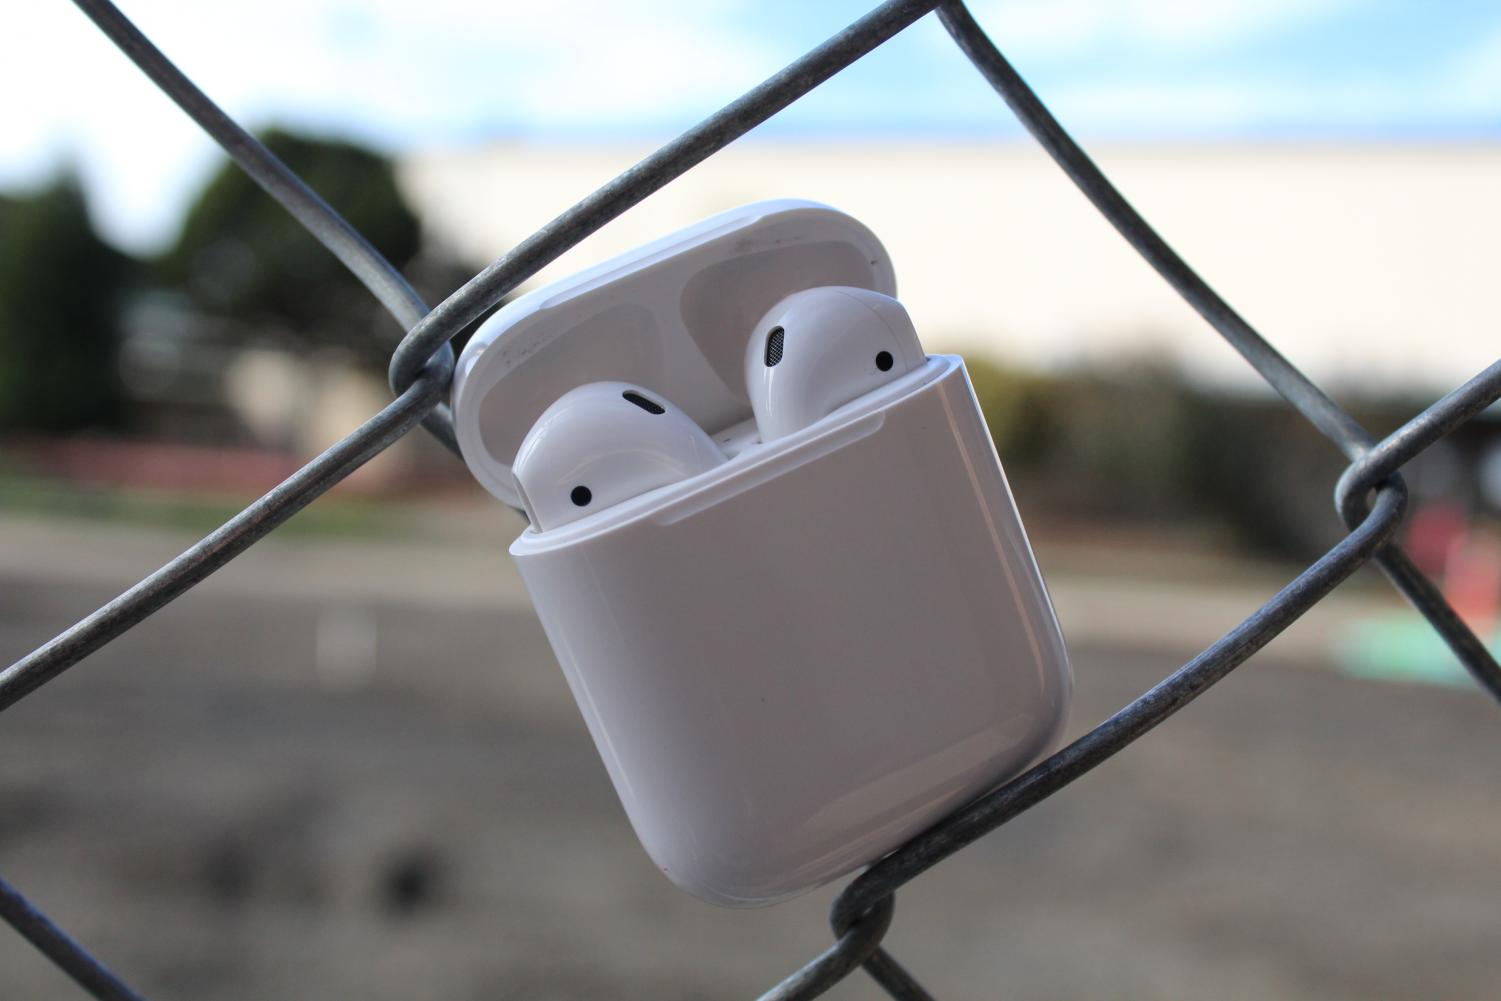 Airpods hanging out on the construction fencing? Sure, why not.